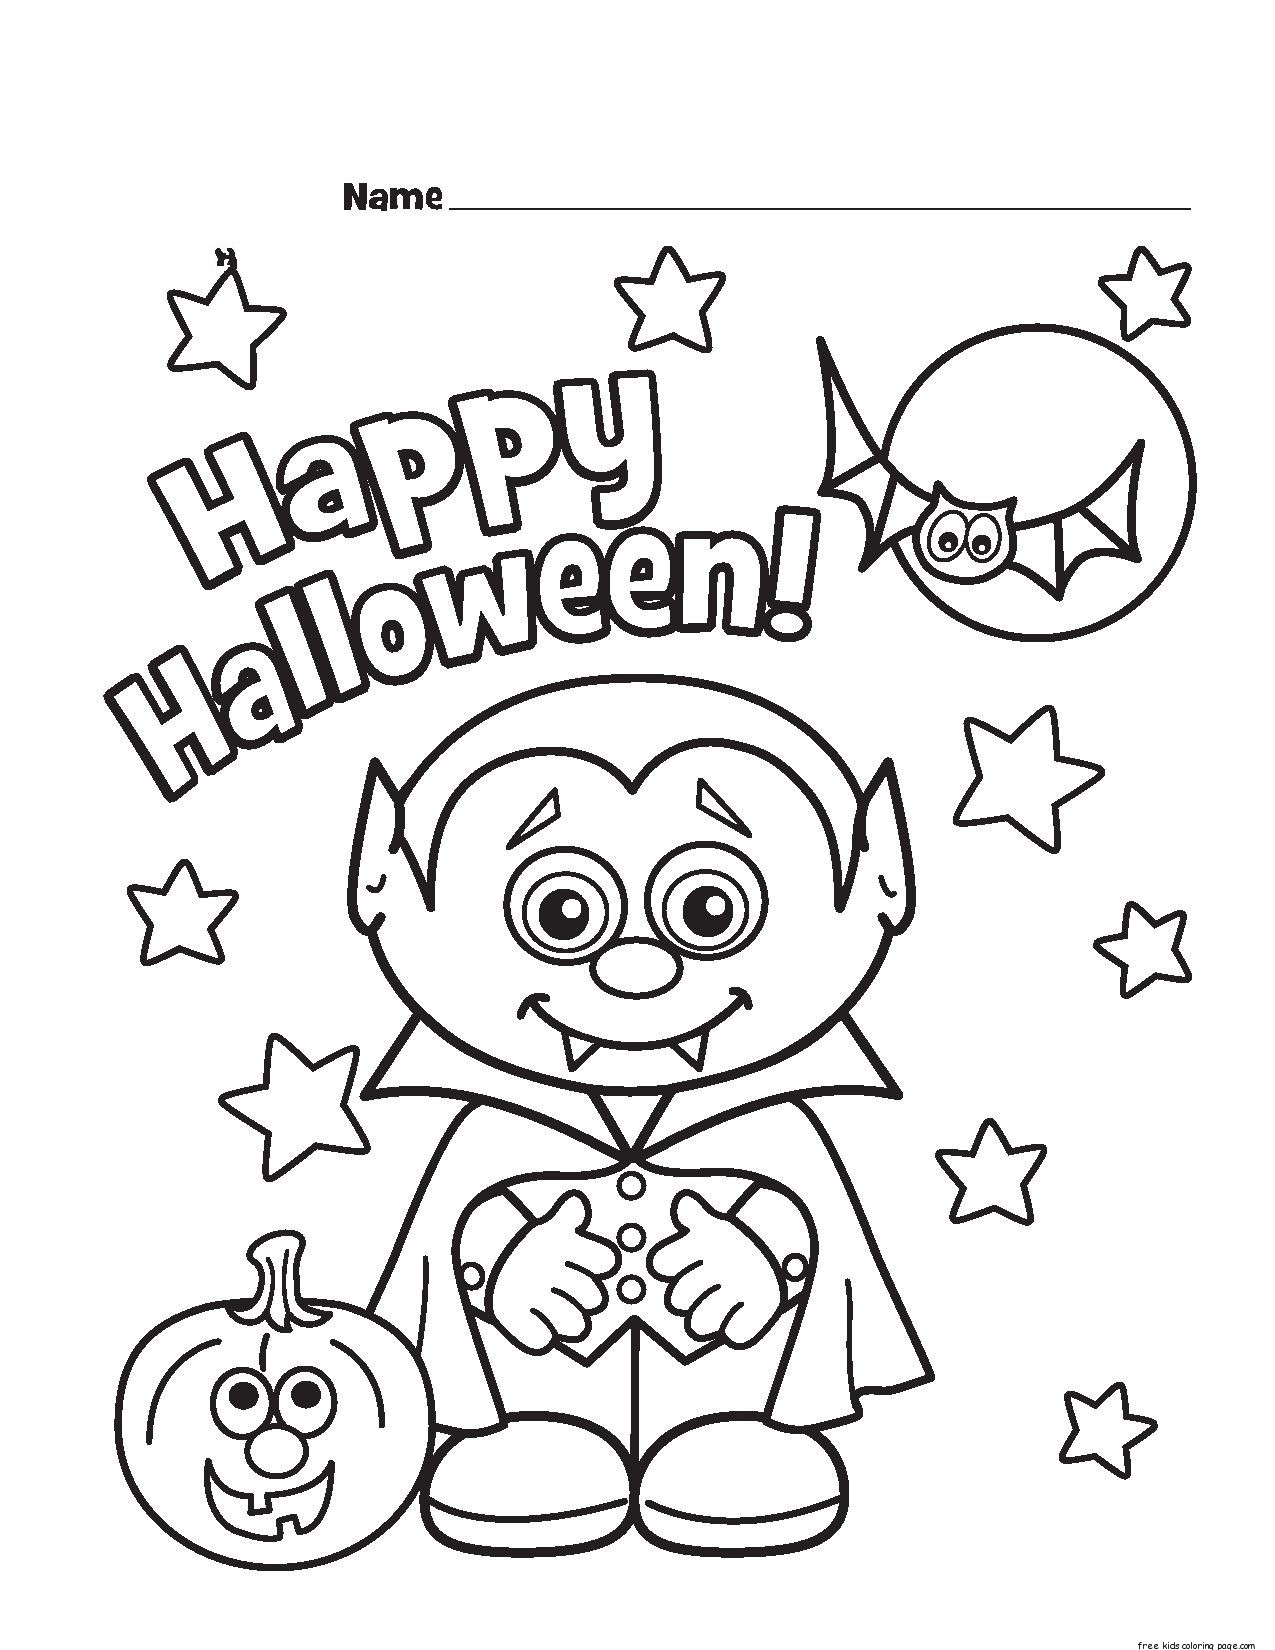 1275x1650 Happy Halloween Coloring Pages Coloringsuite To Print Free Cute